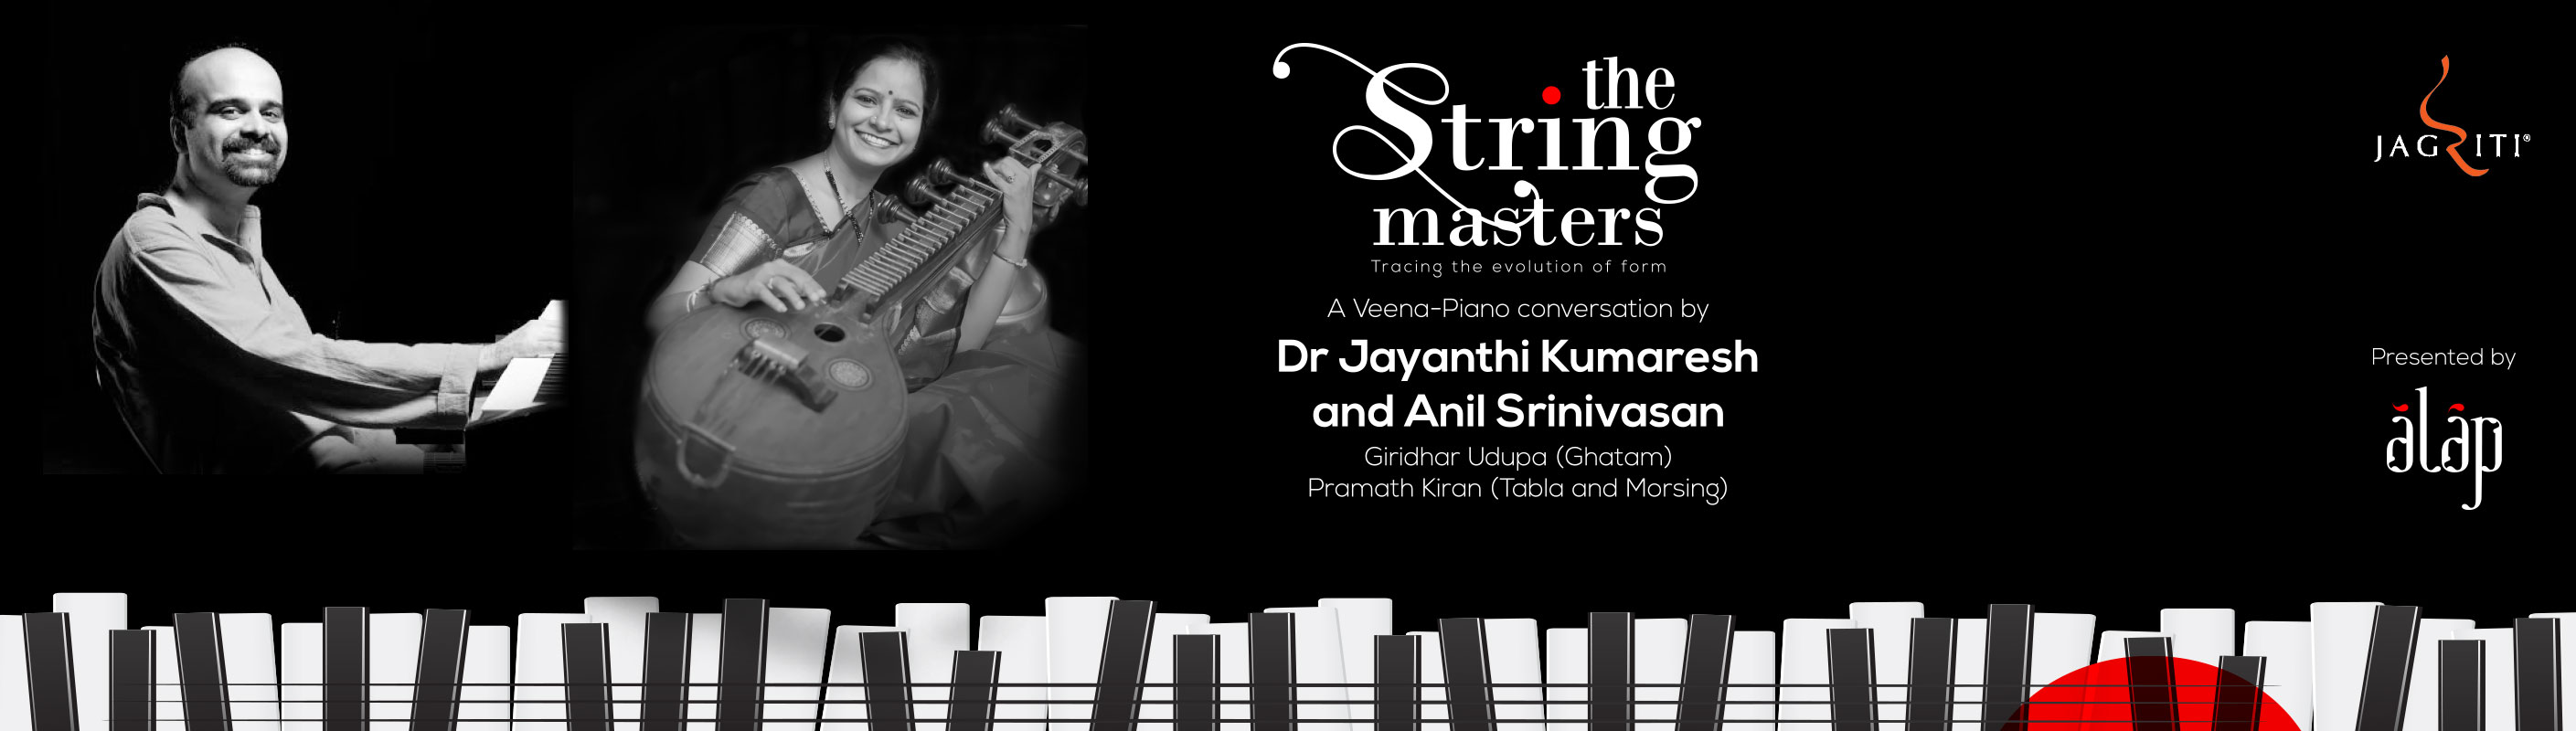 The Stringmasters - Tracing the Evolution of Form